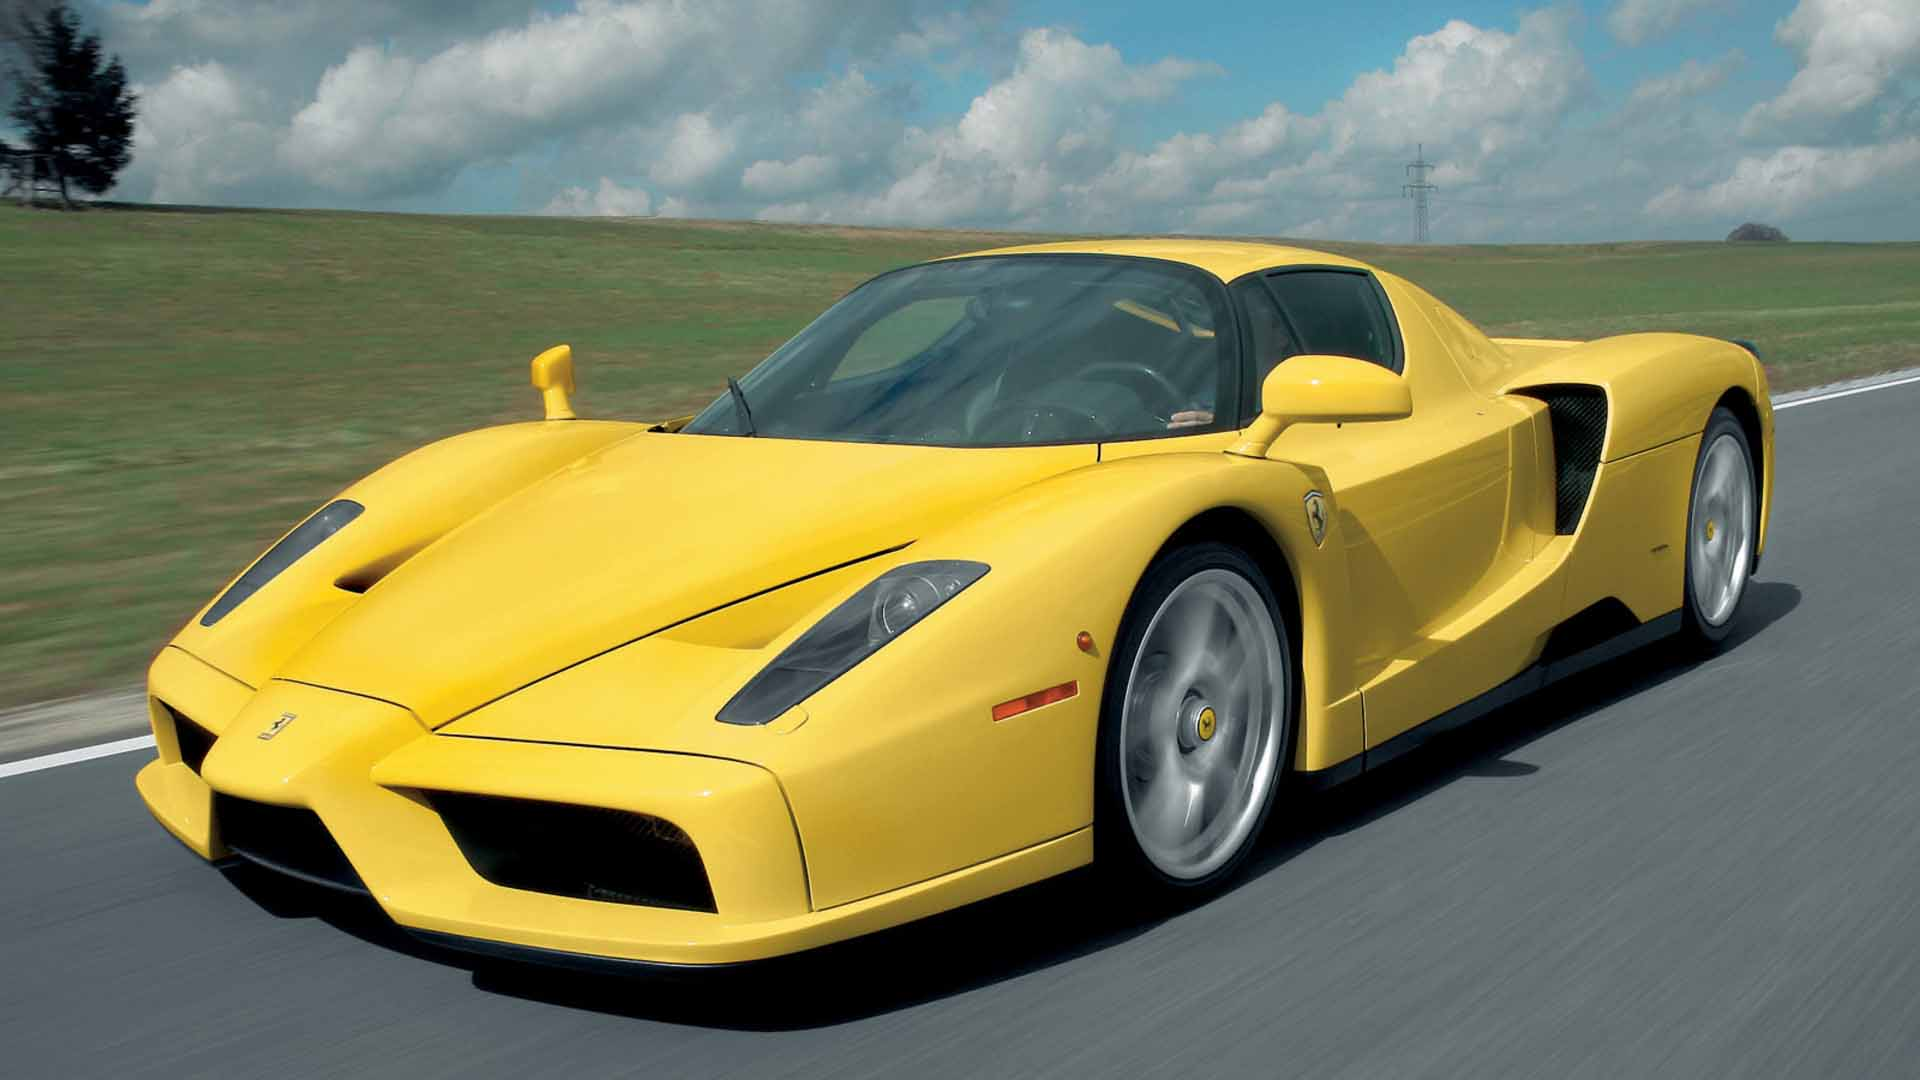 Ferrari High Quality Wallpapers Gallery Original Preview PIC